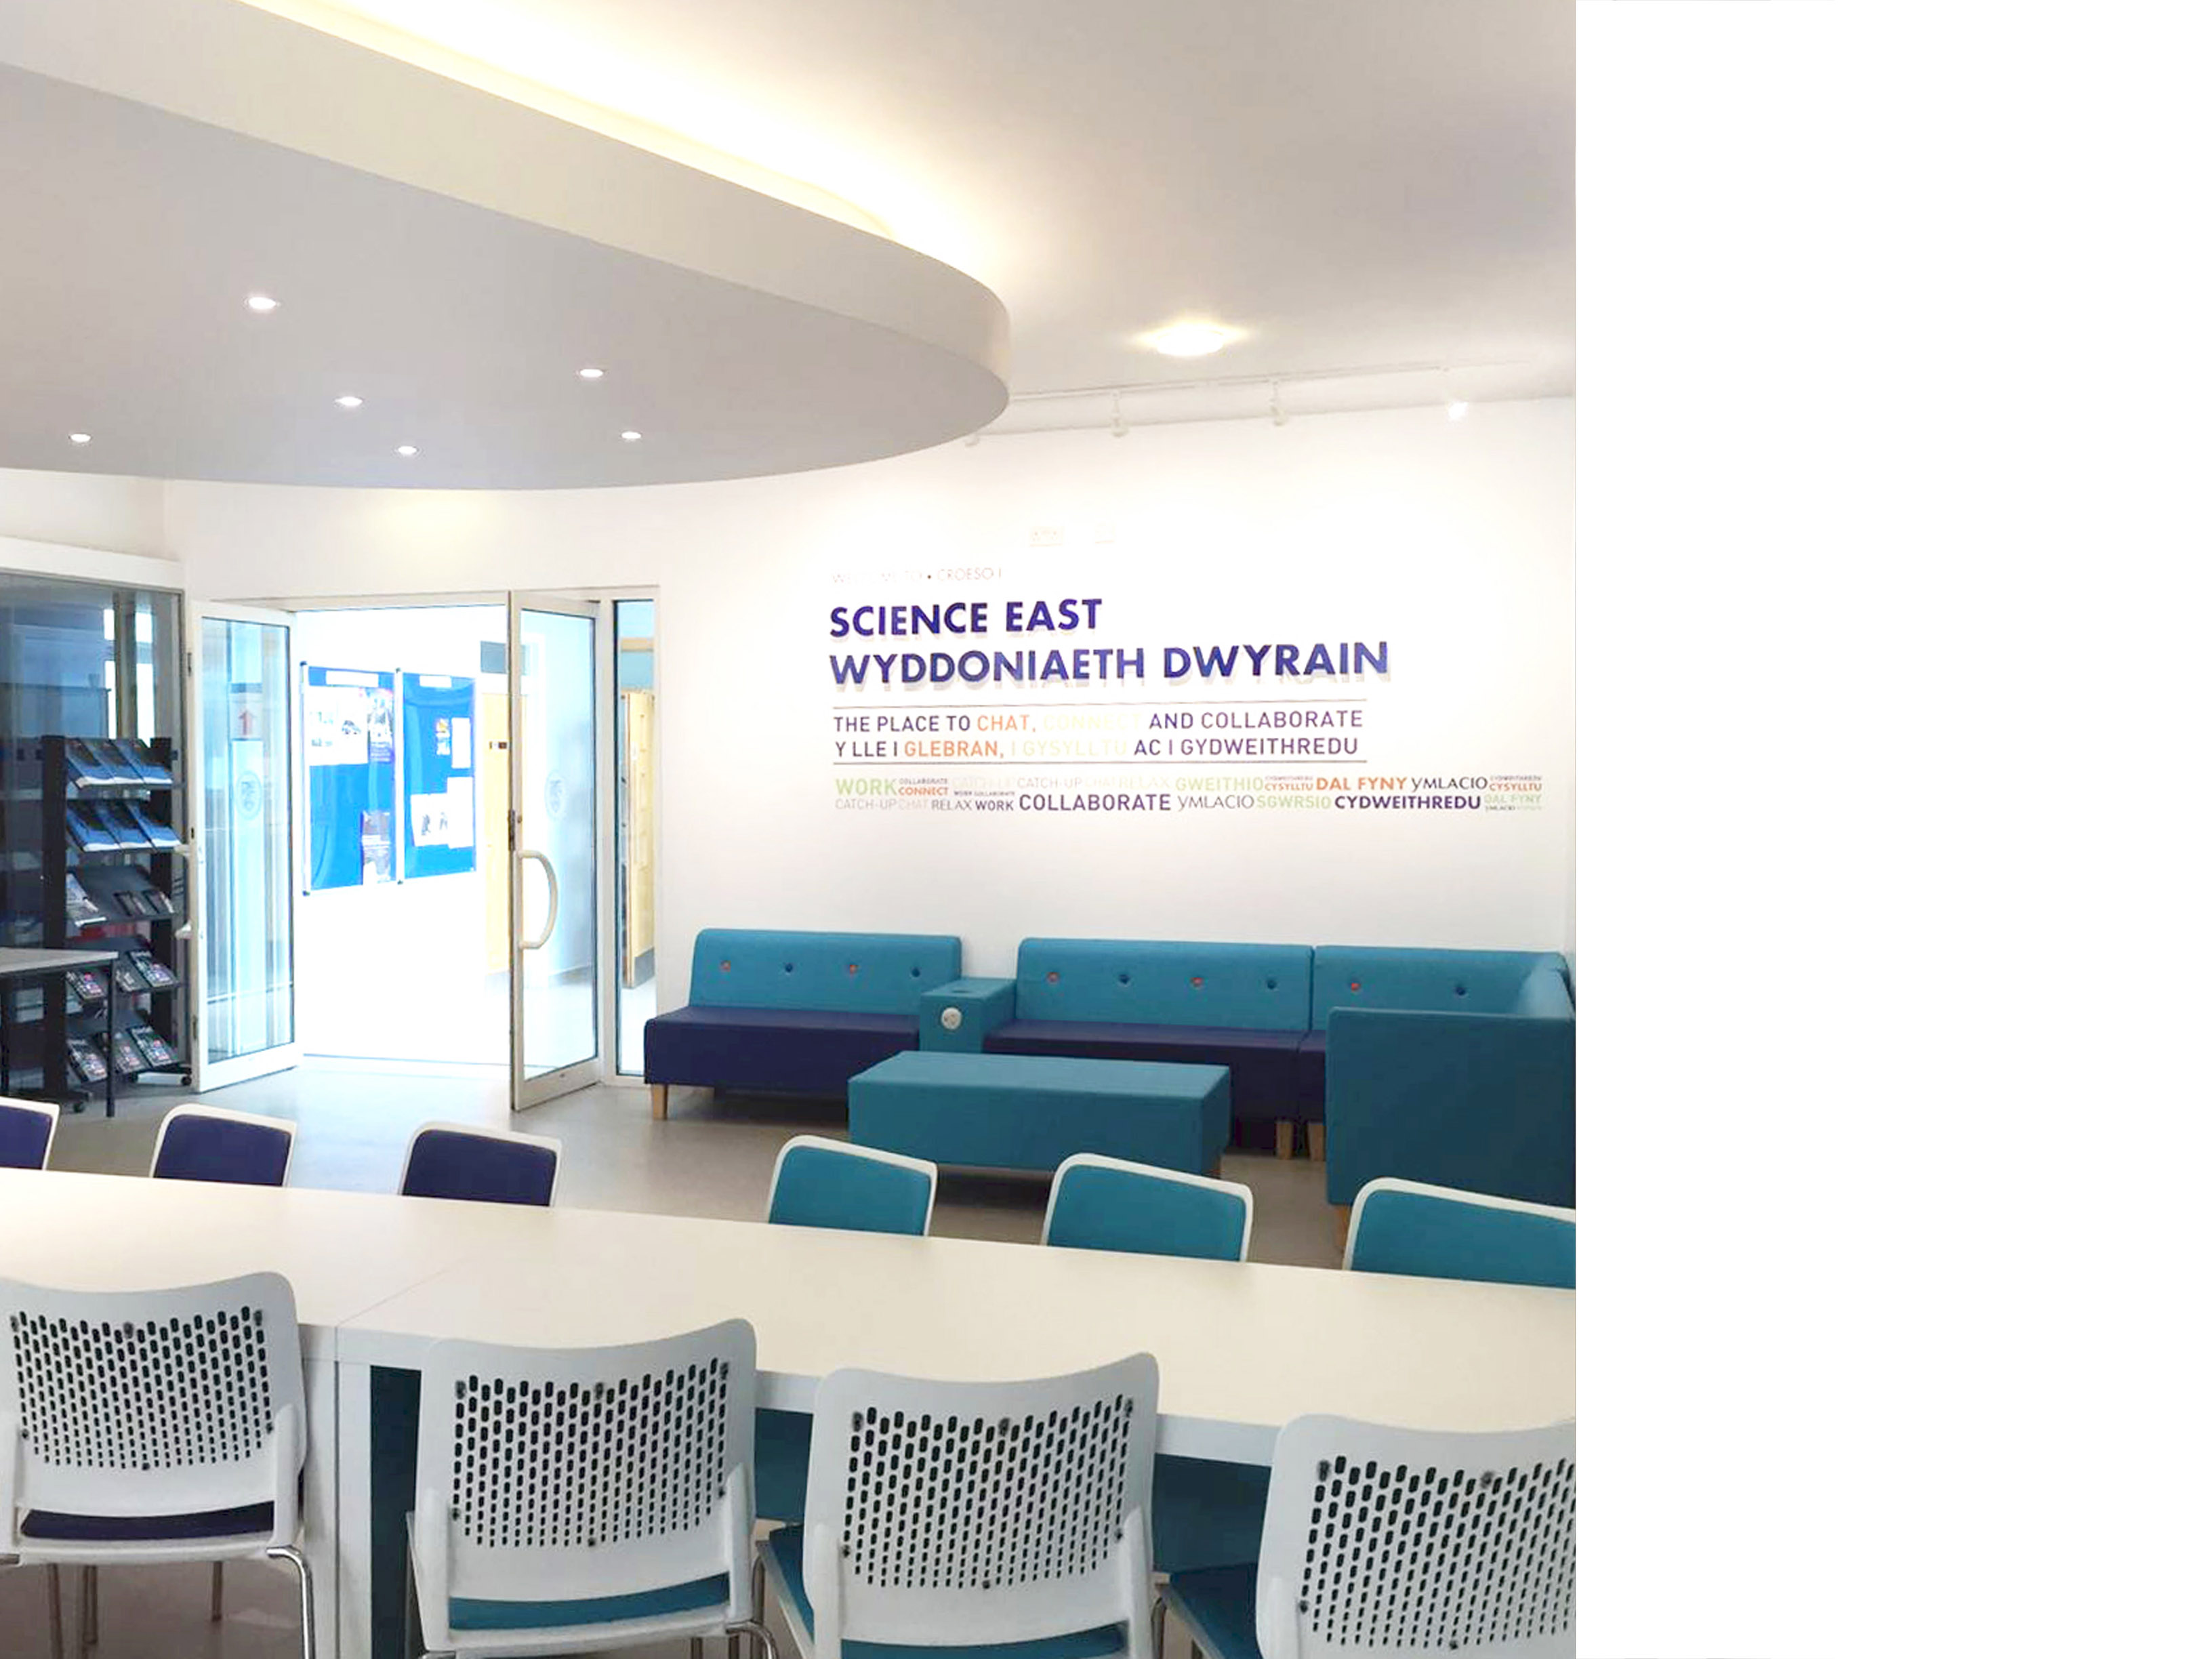 Swansea University Science East